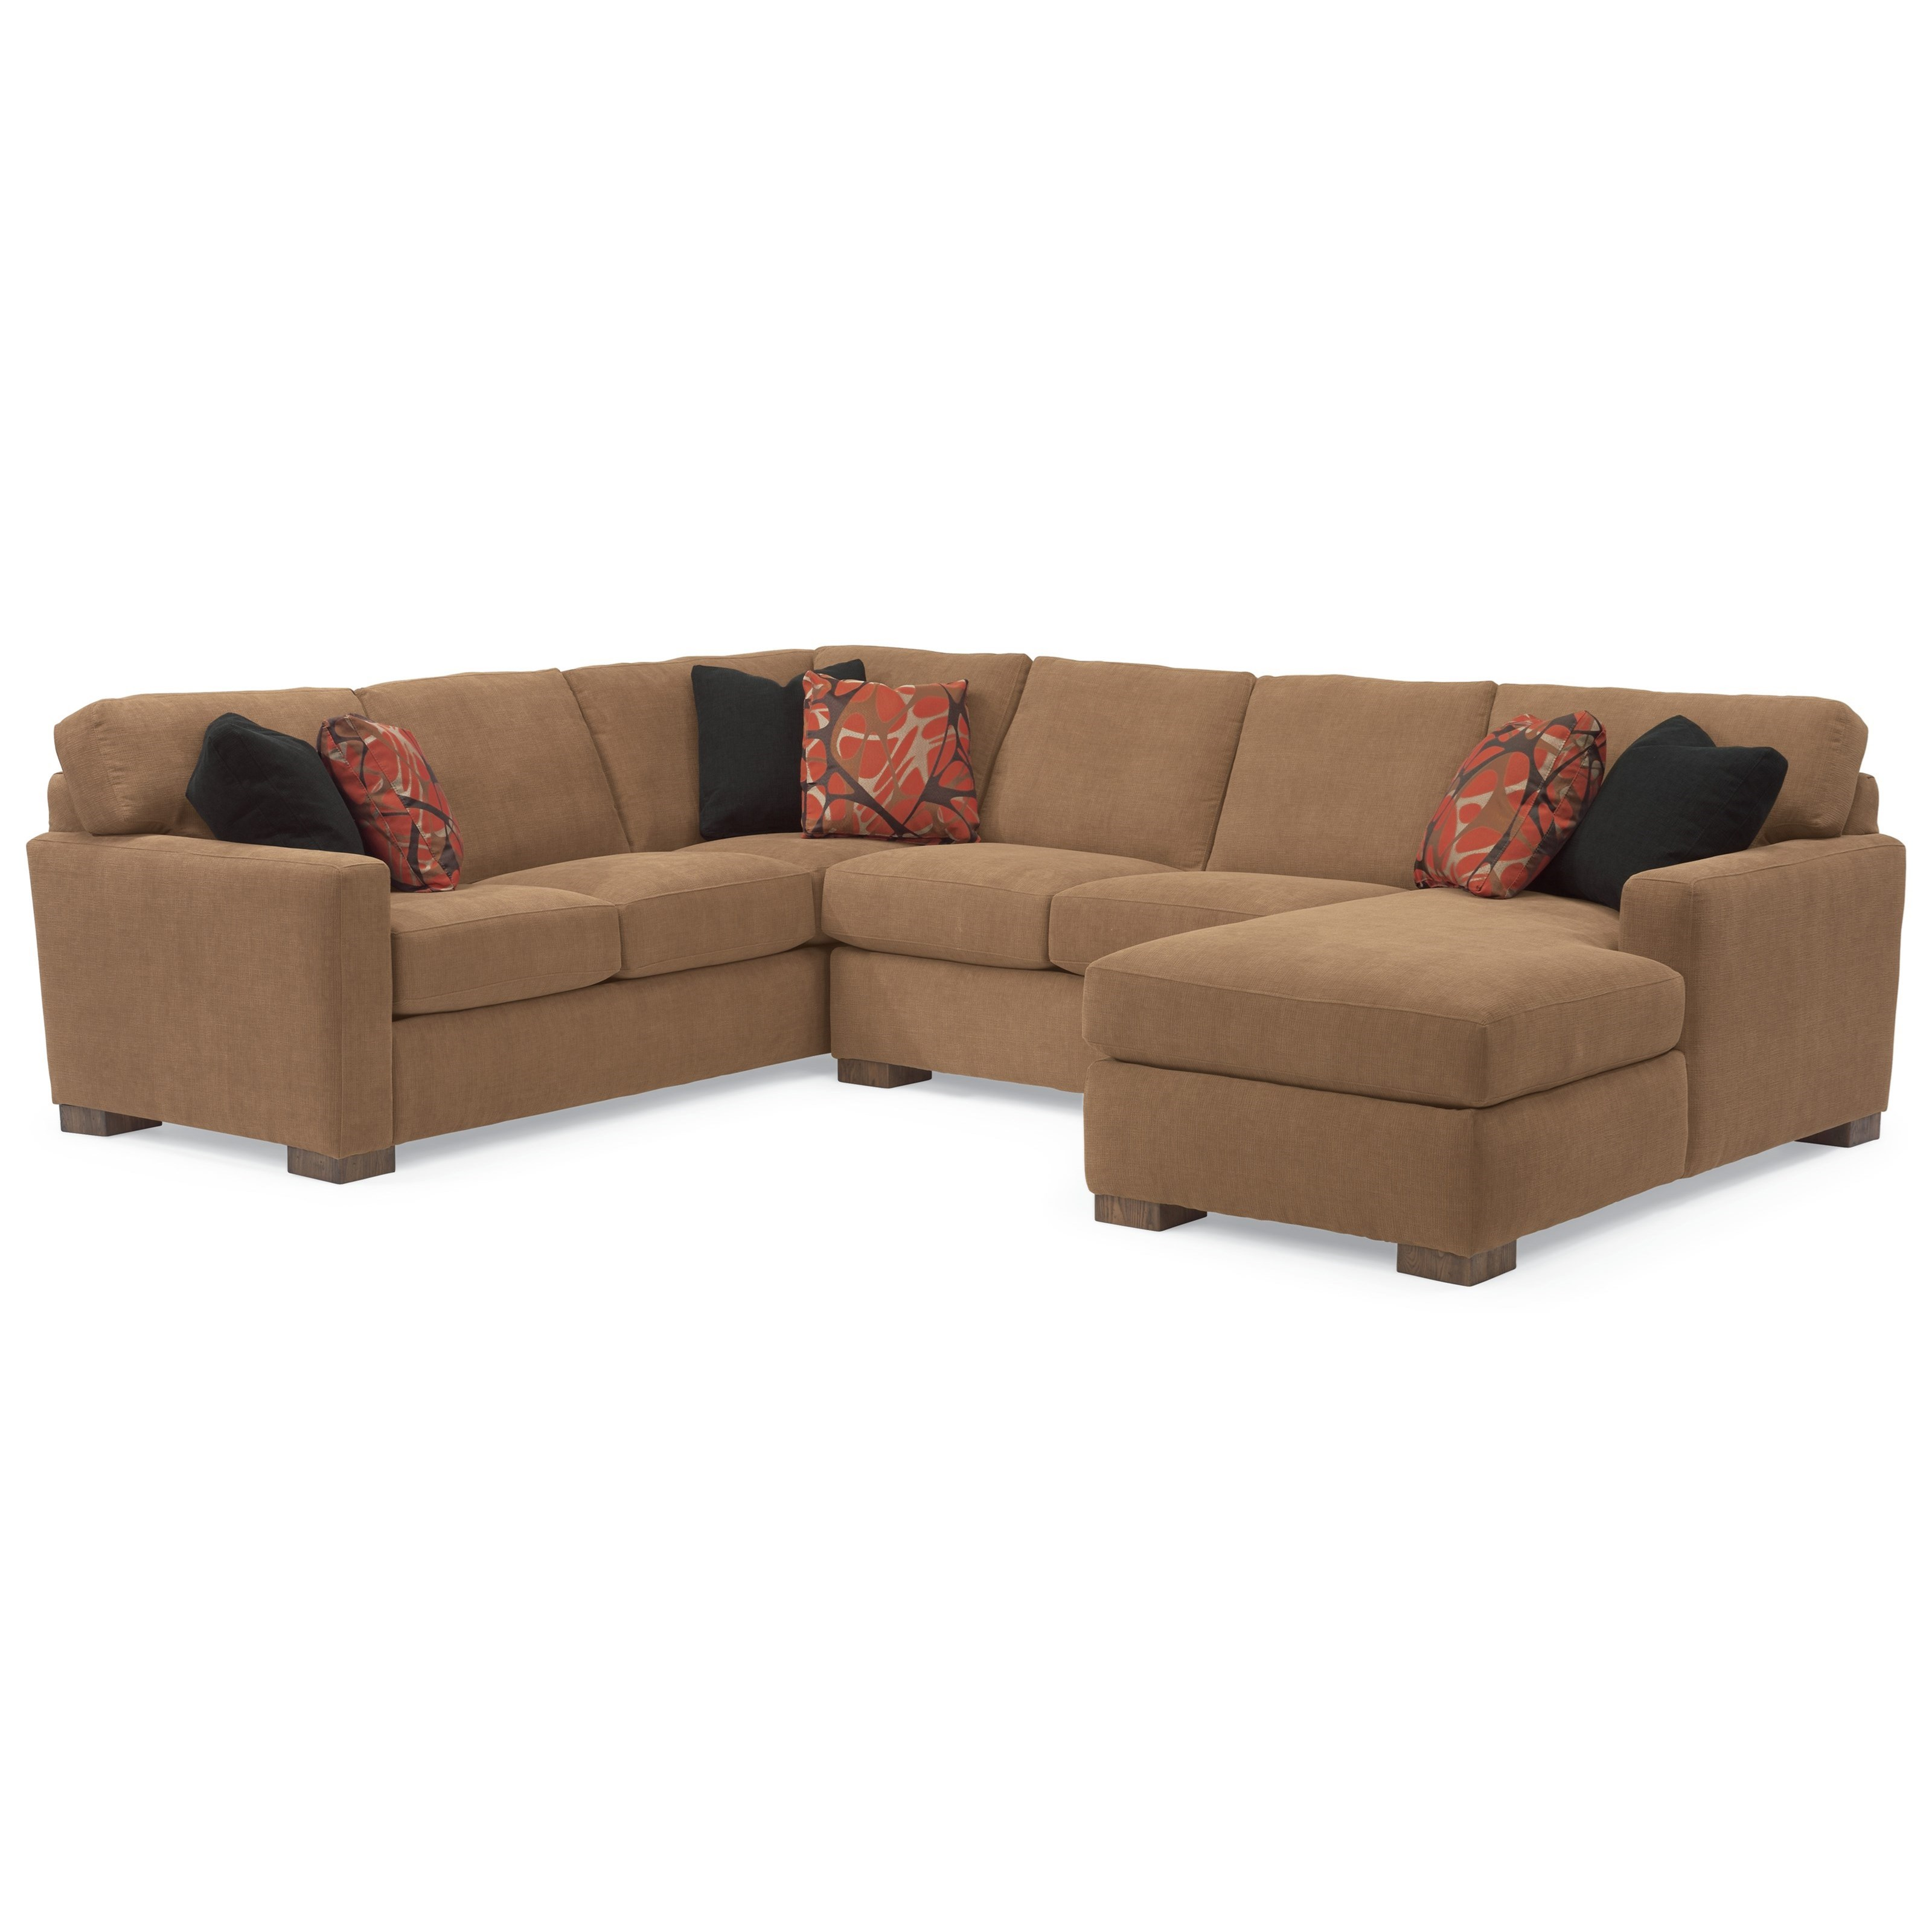 Flexsteel Bryant Contemporary Sectional Sofa With 3 Modular Pieces Conlin S Furniture Sectional Sofas